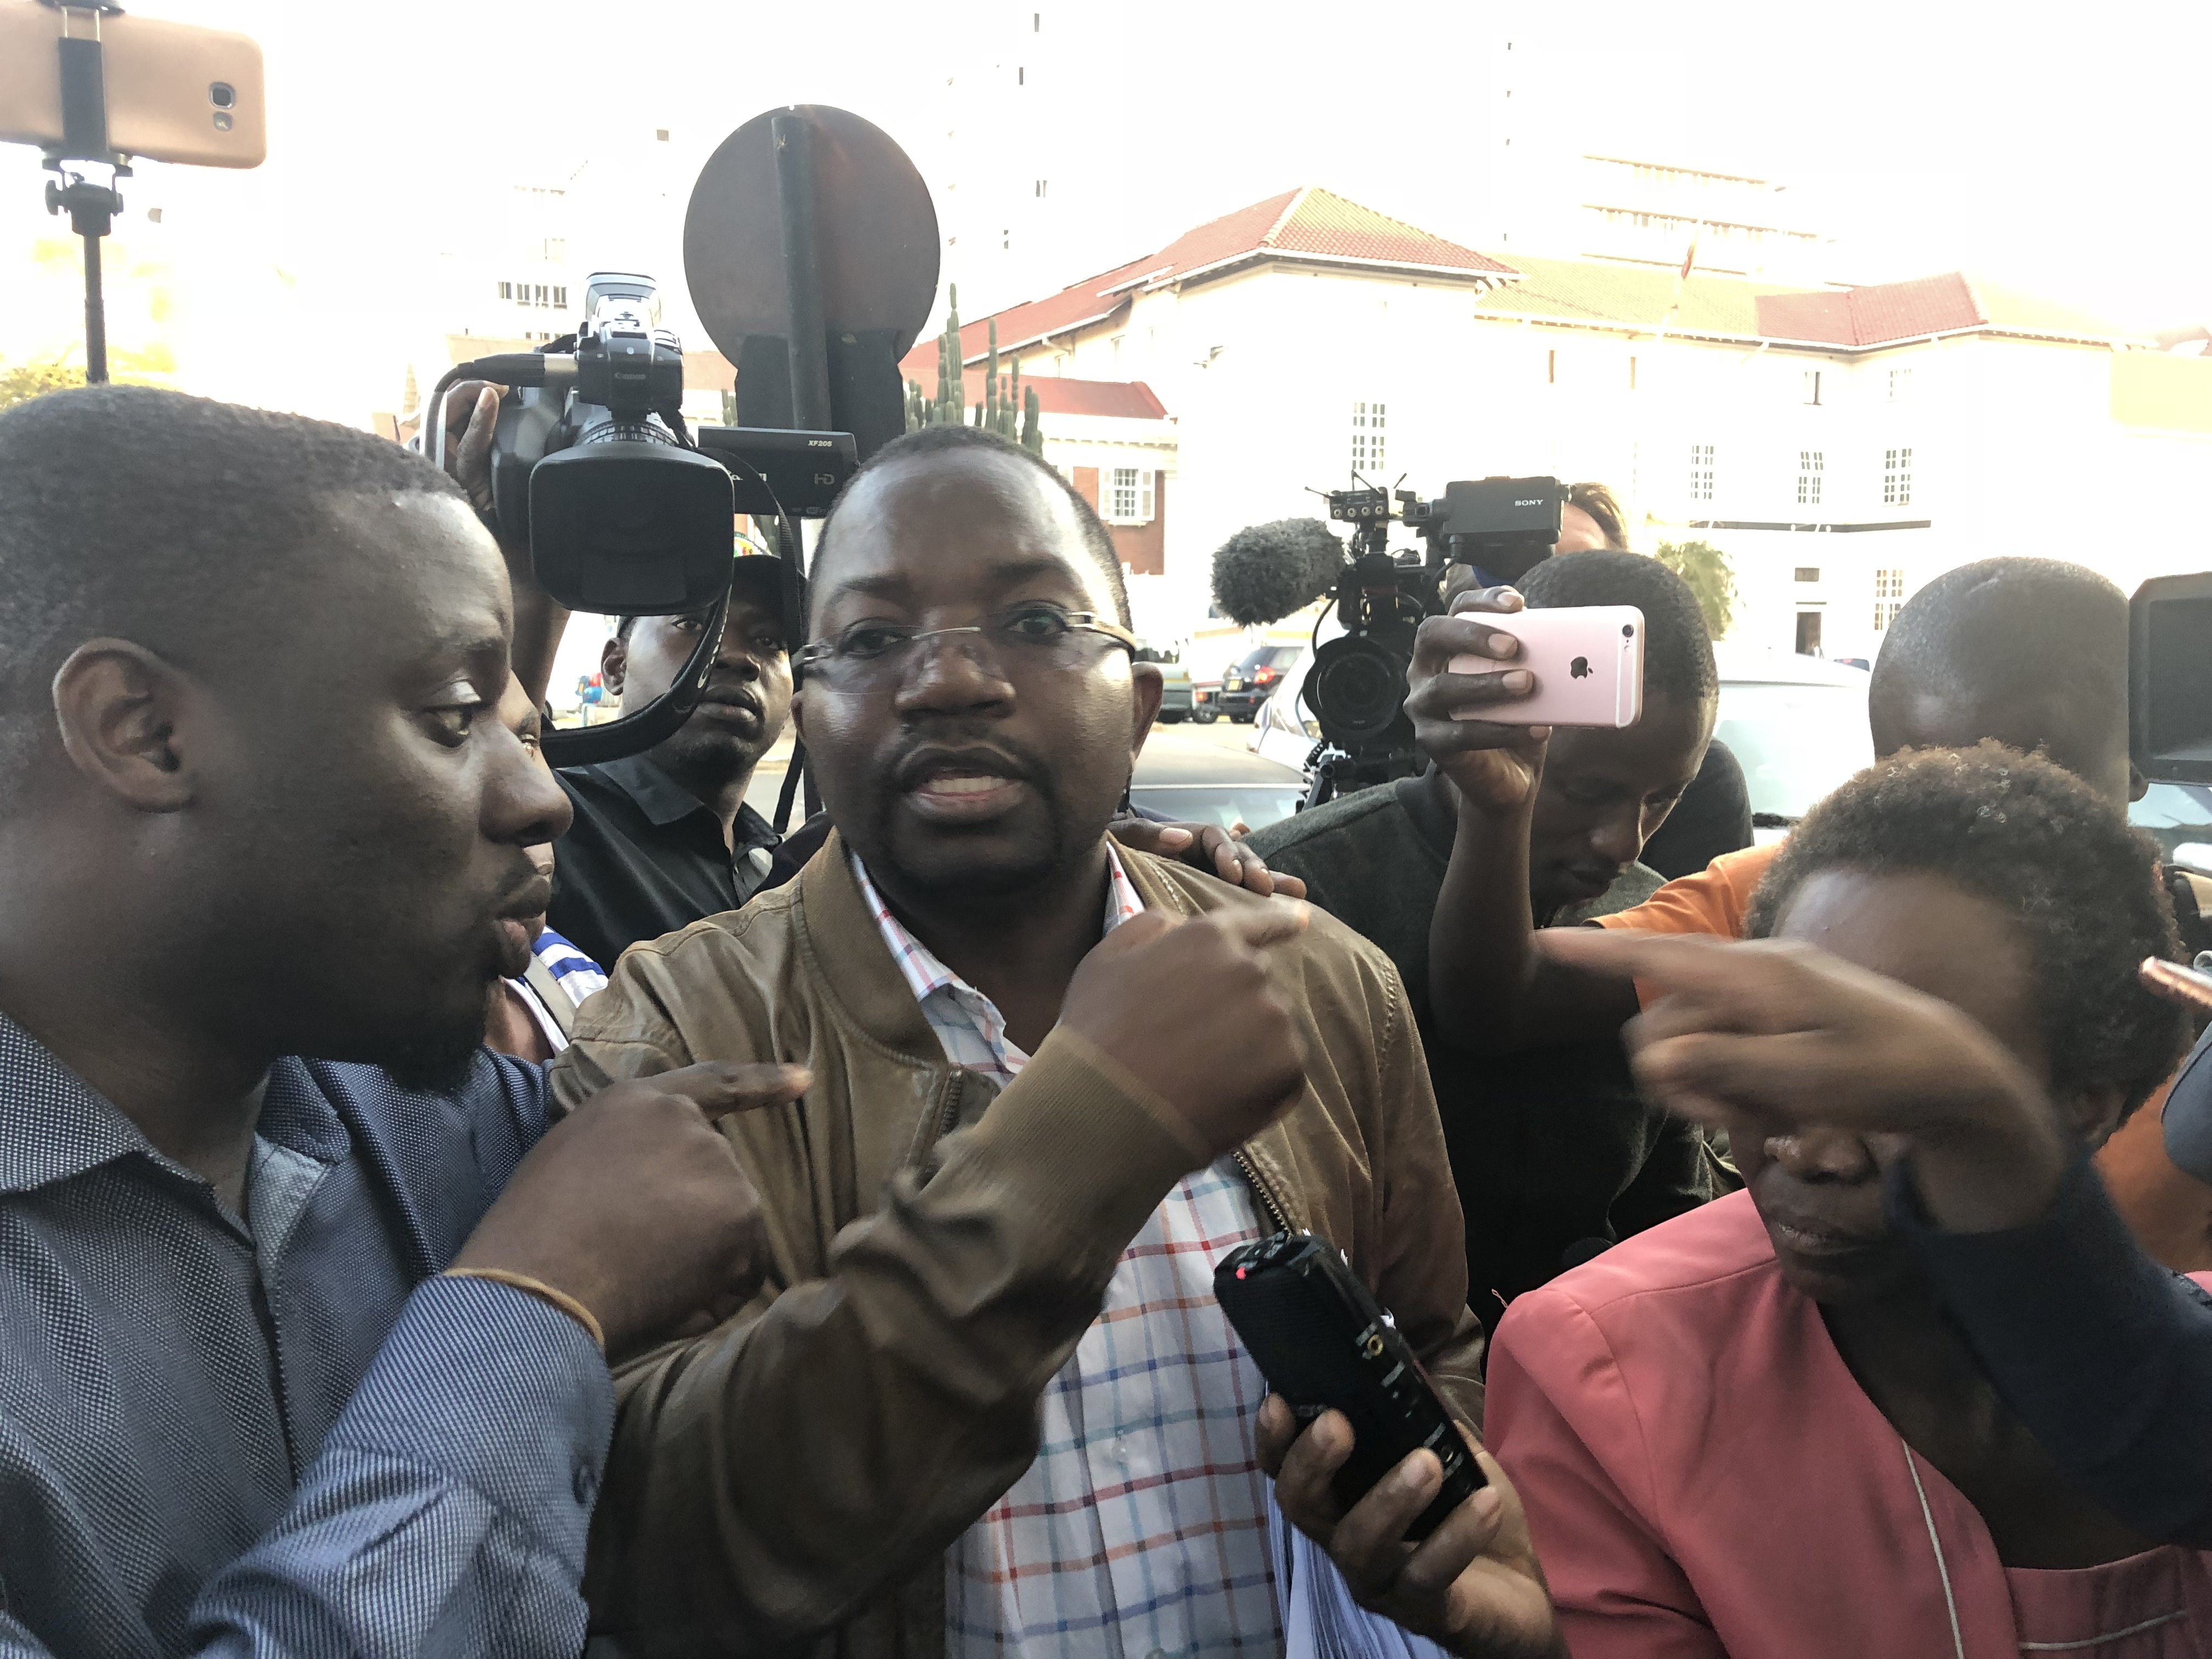 Lawyer Thabani Mpofu speaks to reporters at the Constitutional Court in Harare, Aug. 10, 2018. He is confident of having election results declared invalid, and of Movement for Democratic Change Alliance opposition candidate Nelson Chamisa being decla...